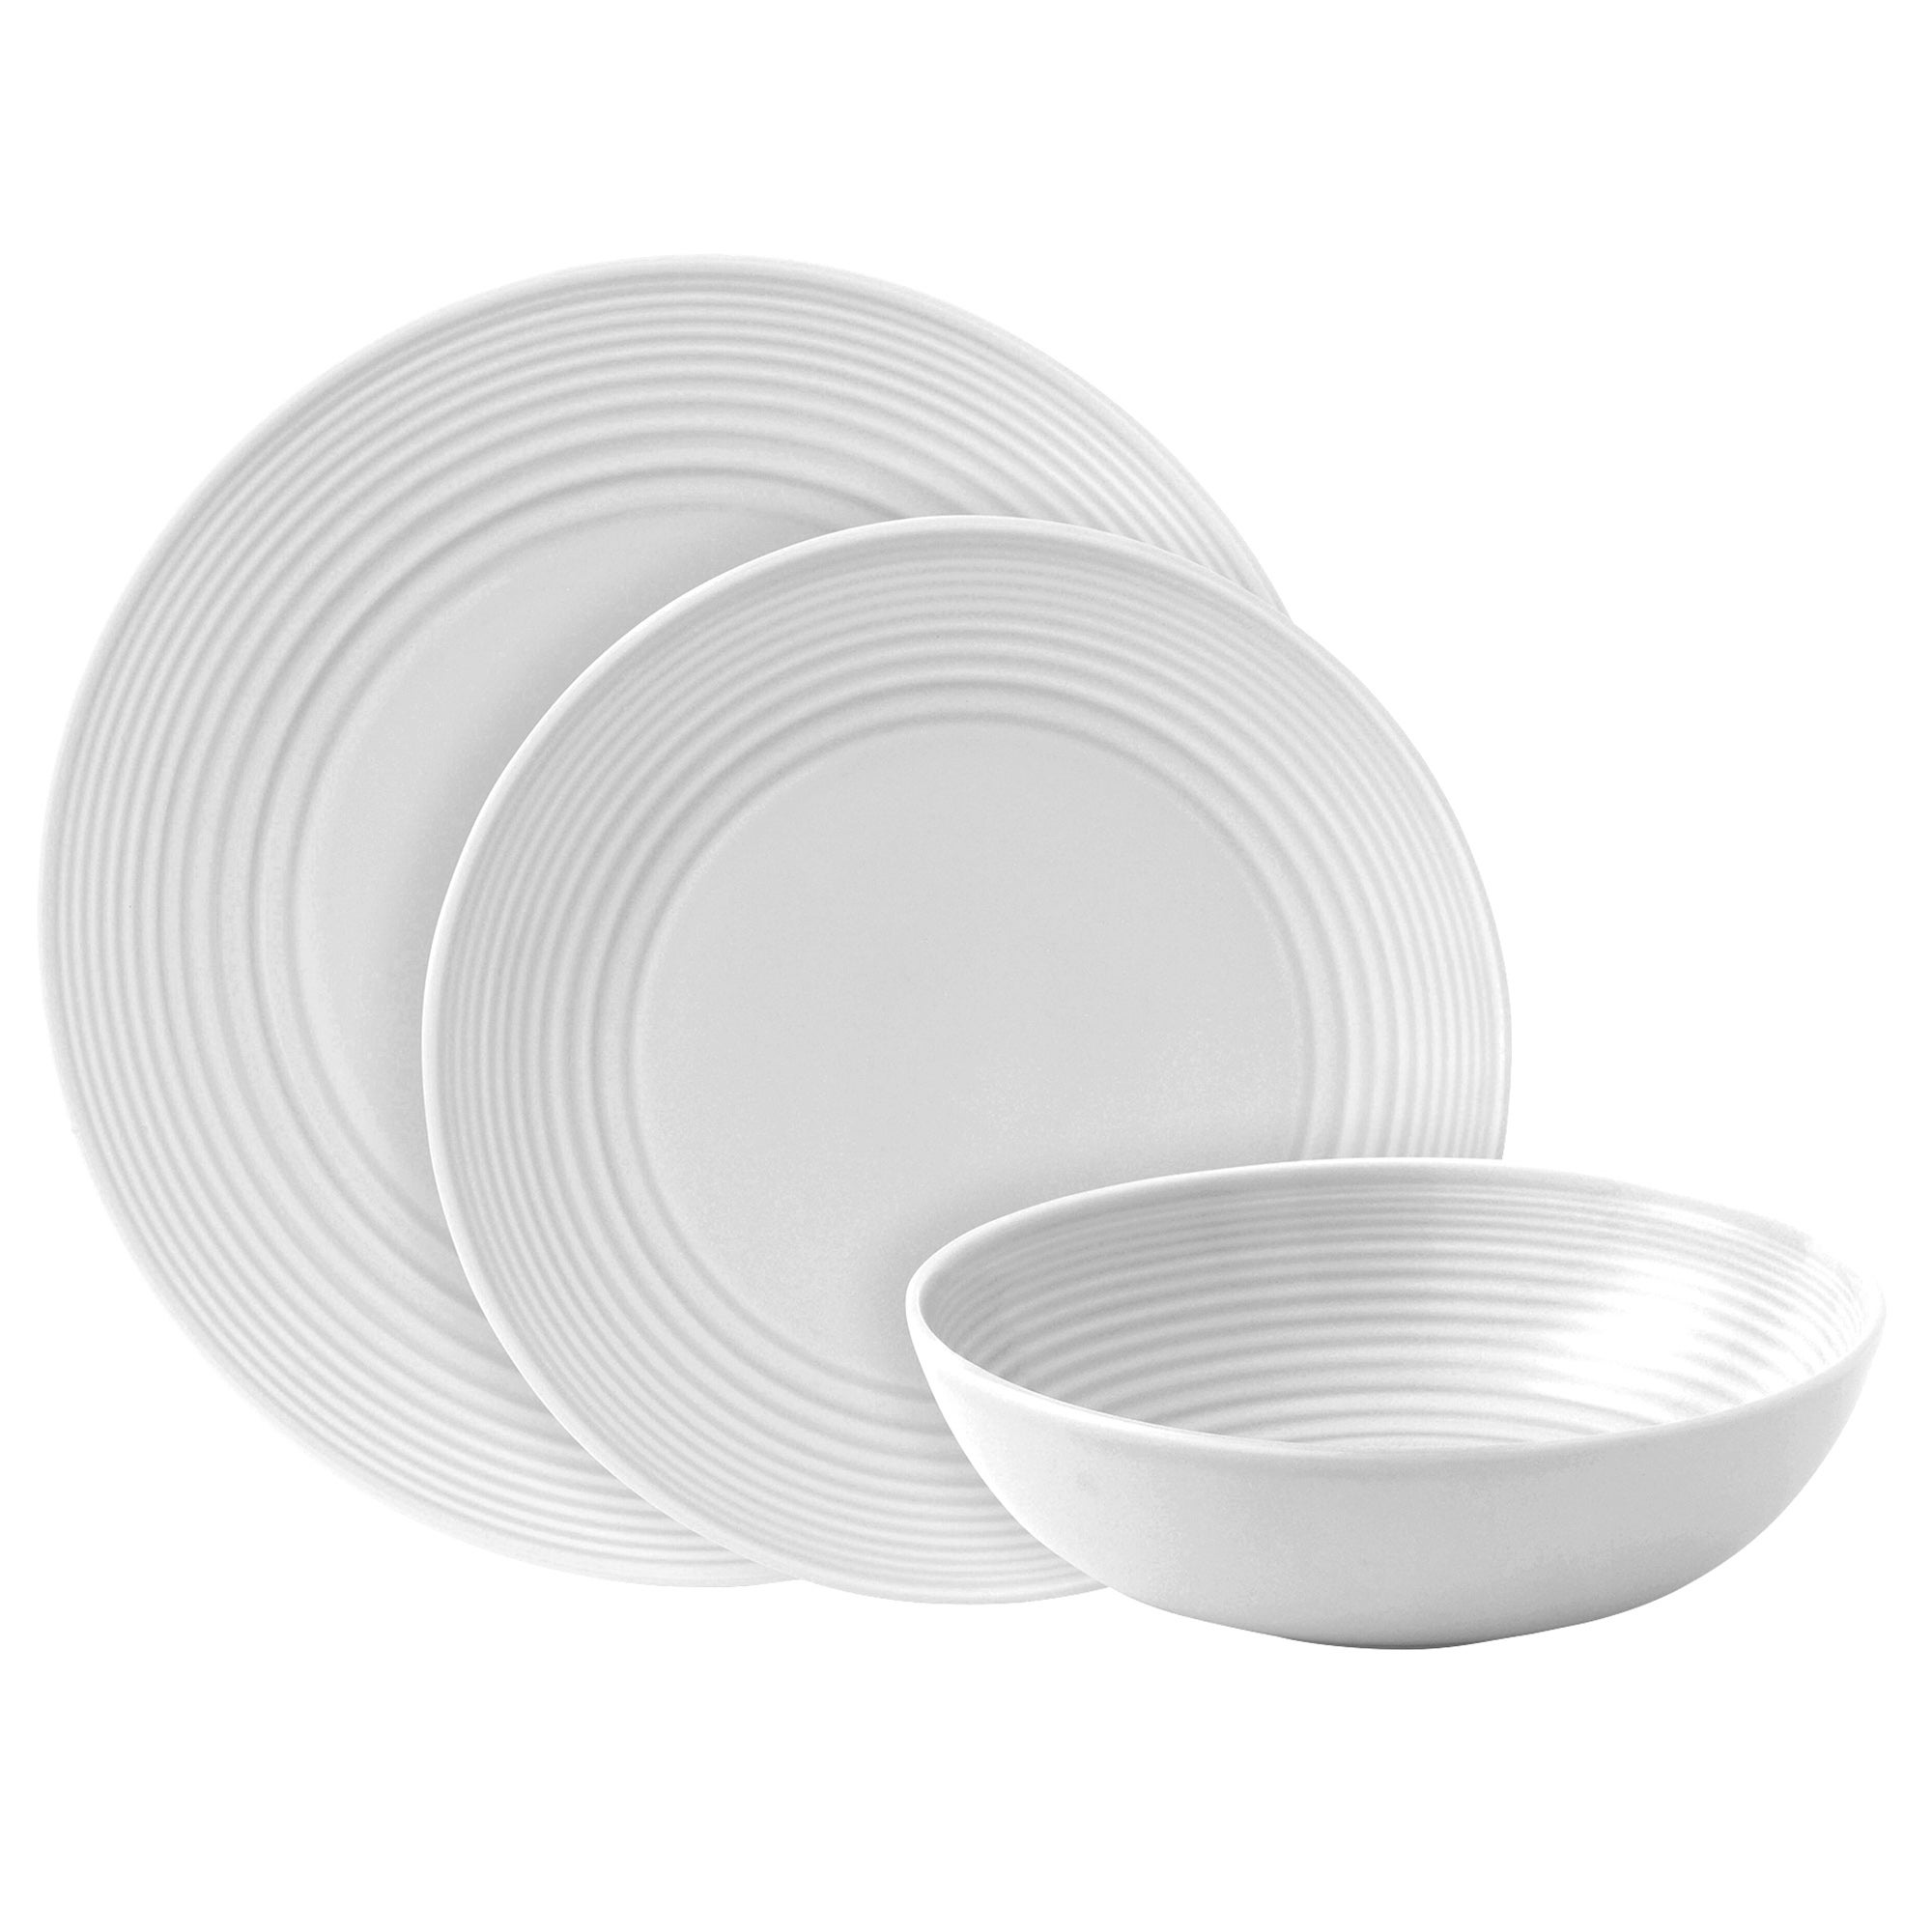 White Gordon Ramsay Maze Collection 12 Piece Dinner Set